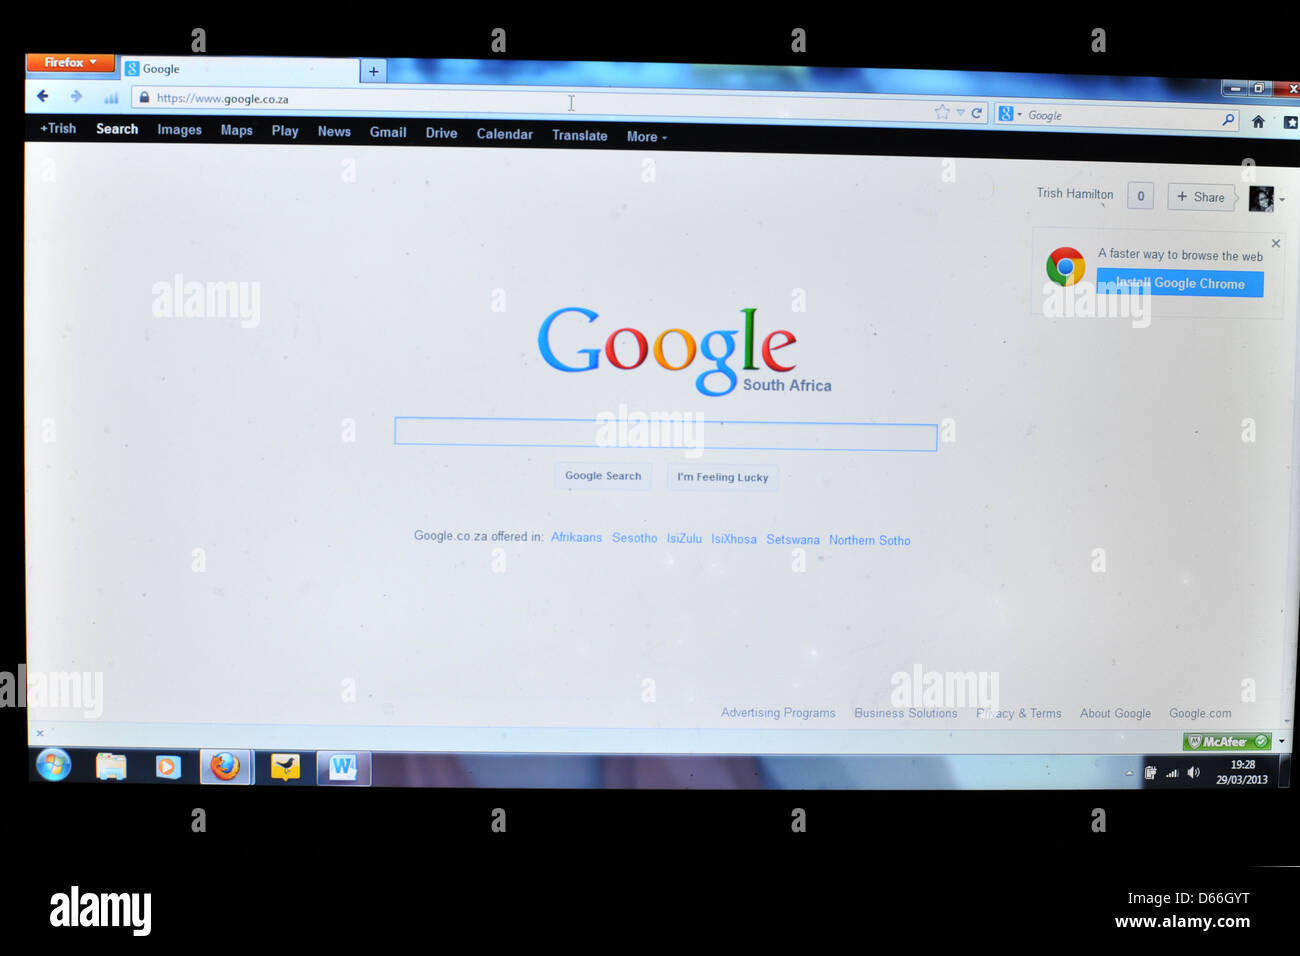 Image of a computer screen showing the Google South Africa homepage. - Stock Image